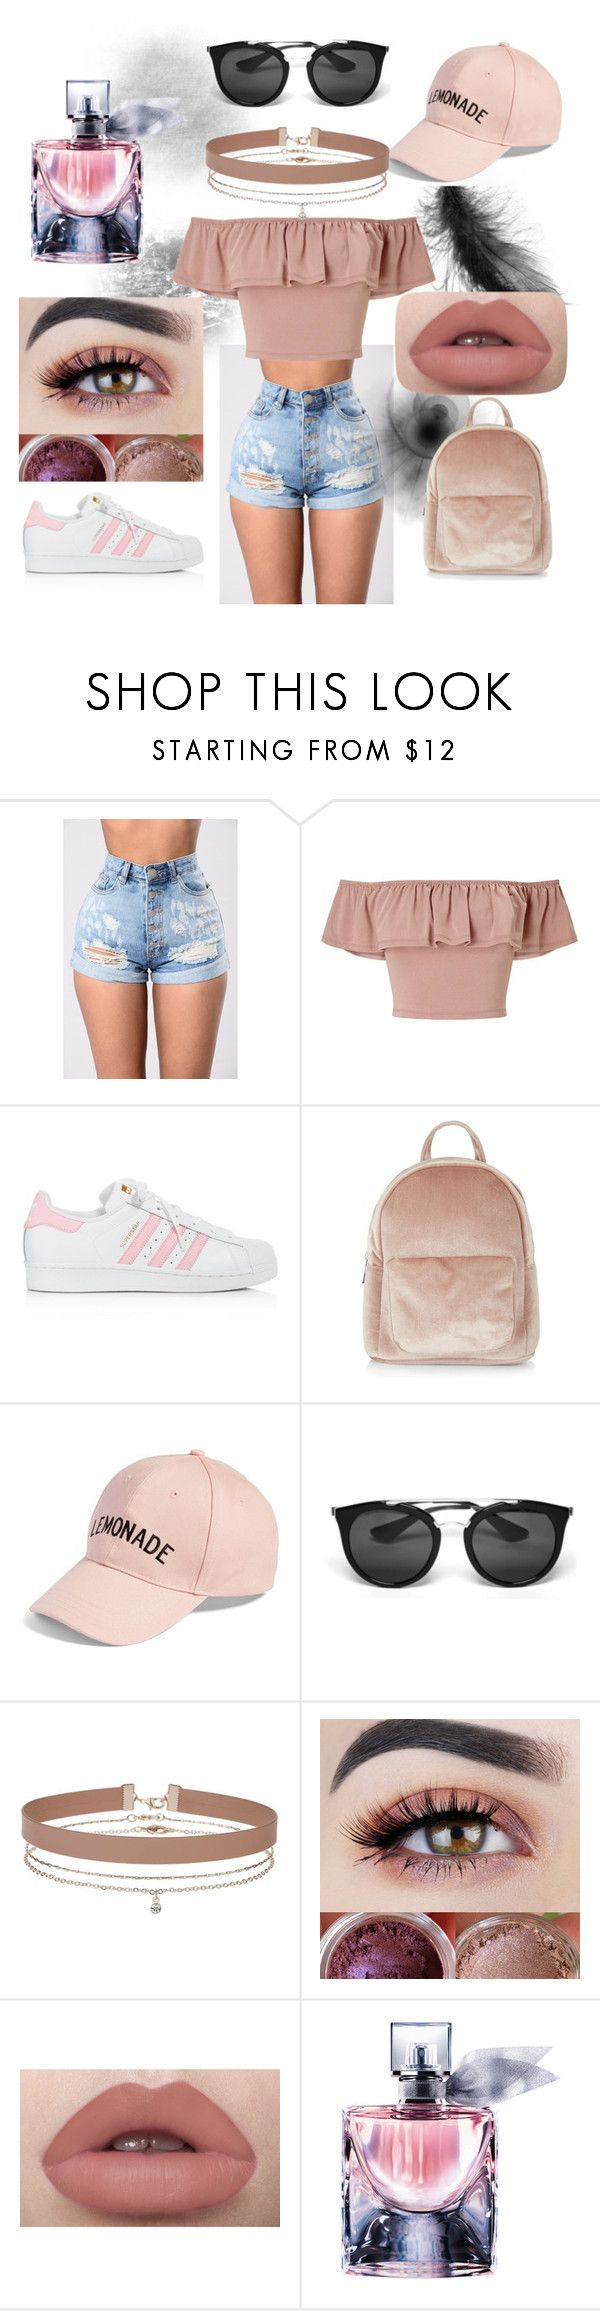 774f1780af outfit juvenil casual by mariapazmarixxd on Polyvore featuring moda, Miss  Selfridge, adidas, New Look, Amici Accessories, Prada y Lancôme